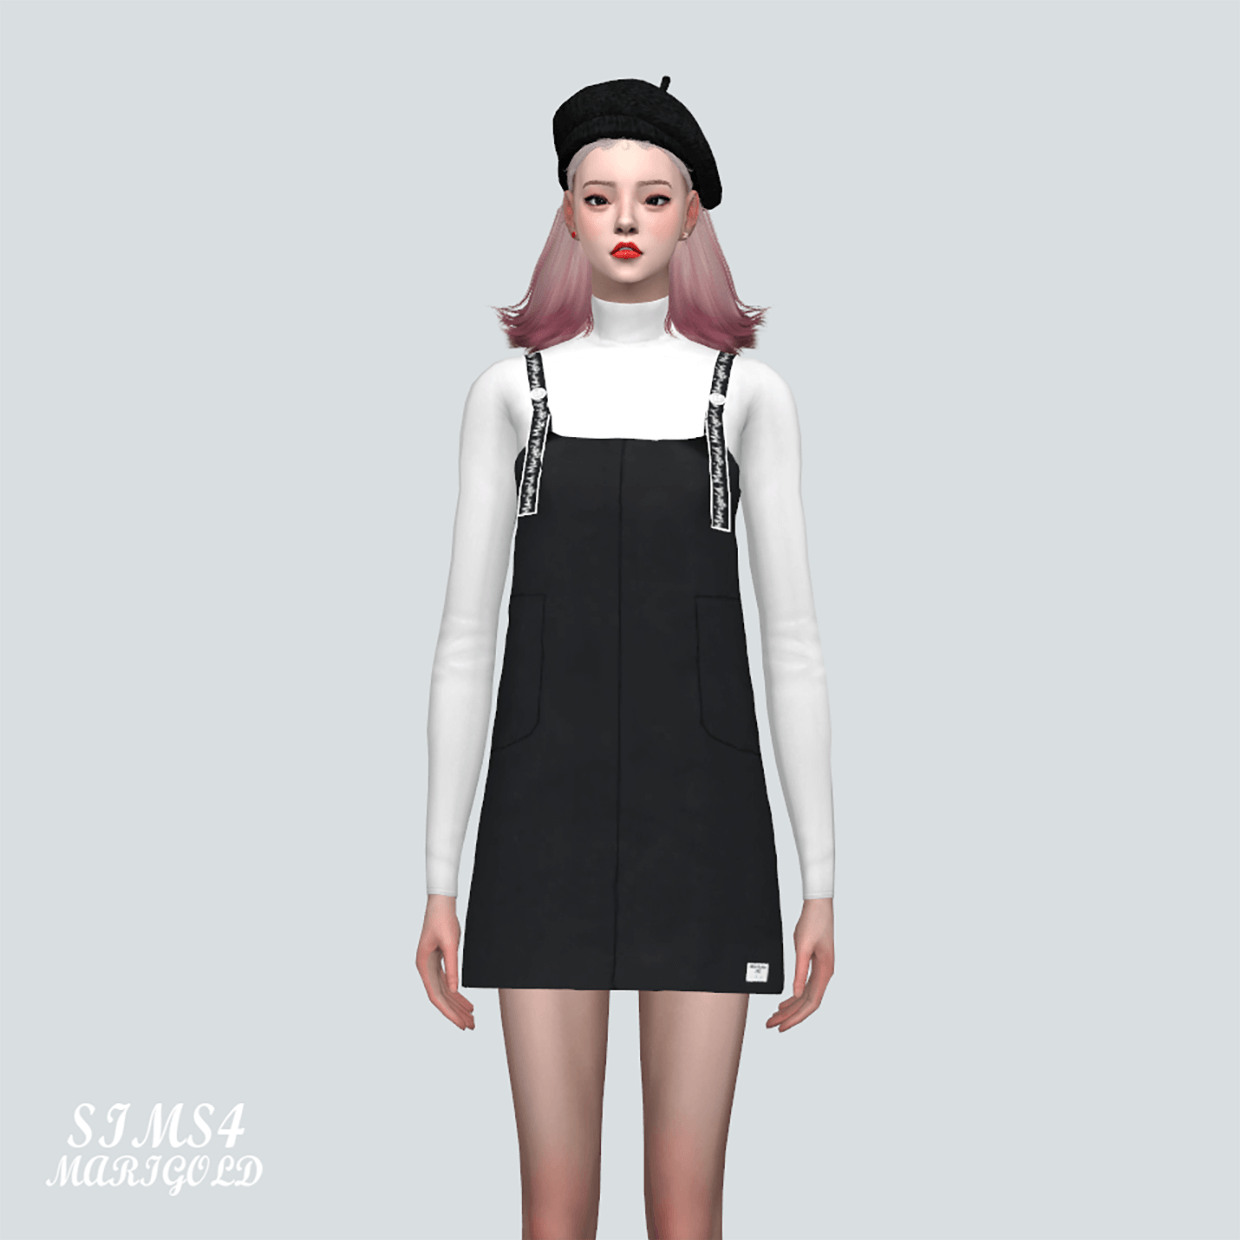 Body Suspenders Mini Dress With Turtleneck Top by Marigold